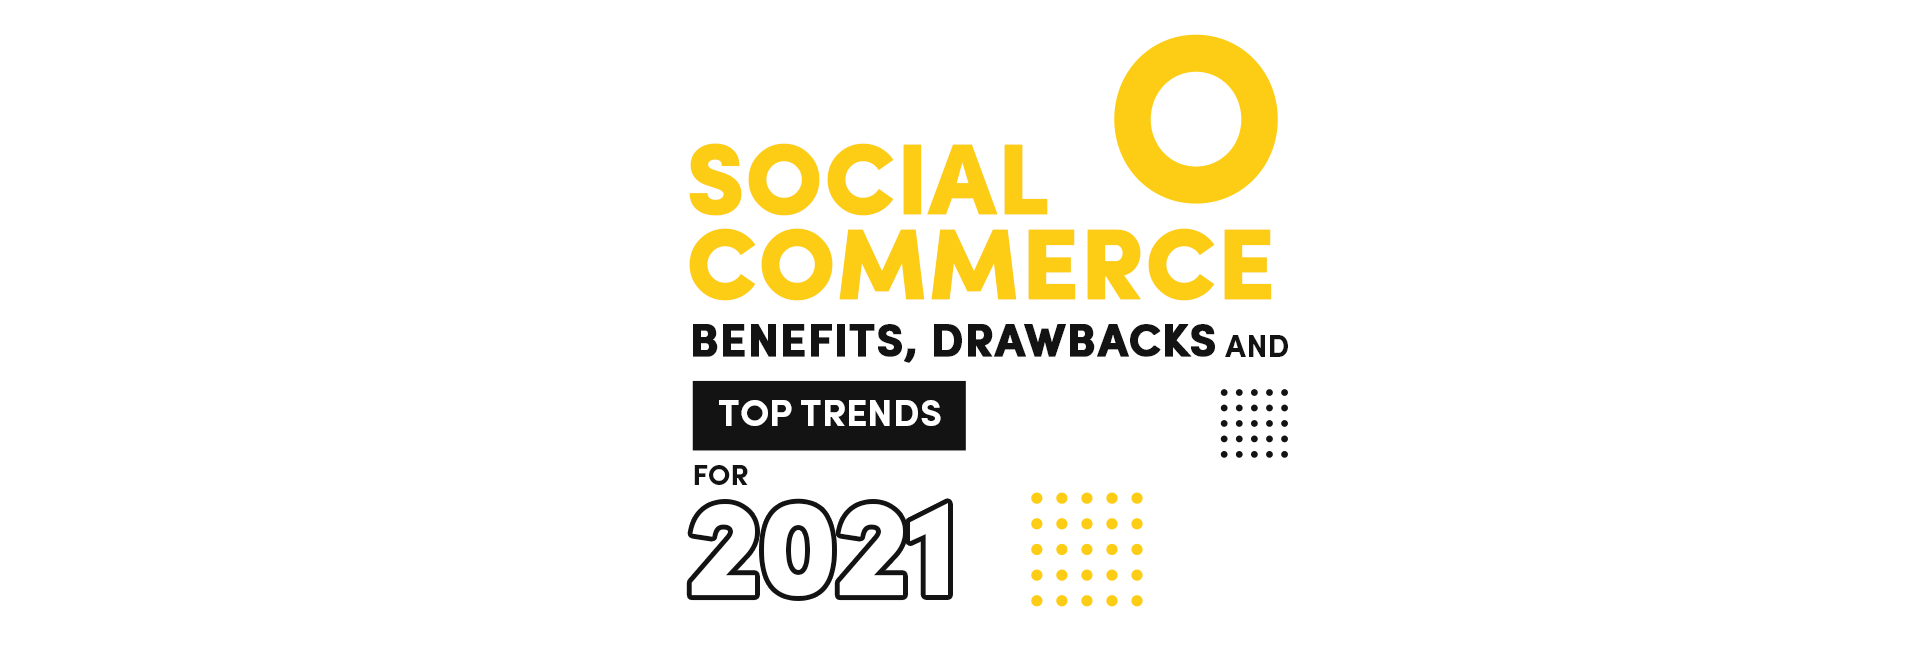 Social Commerce Benefits, Drawbacks and Top Trends for 2021